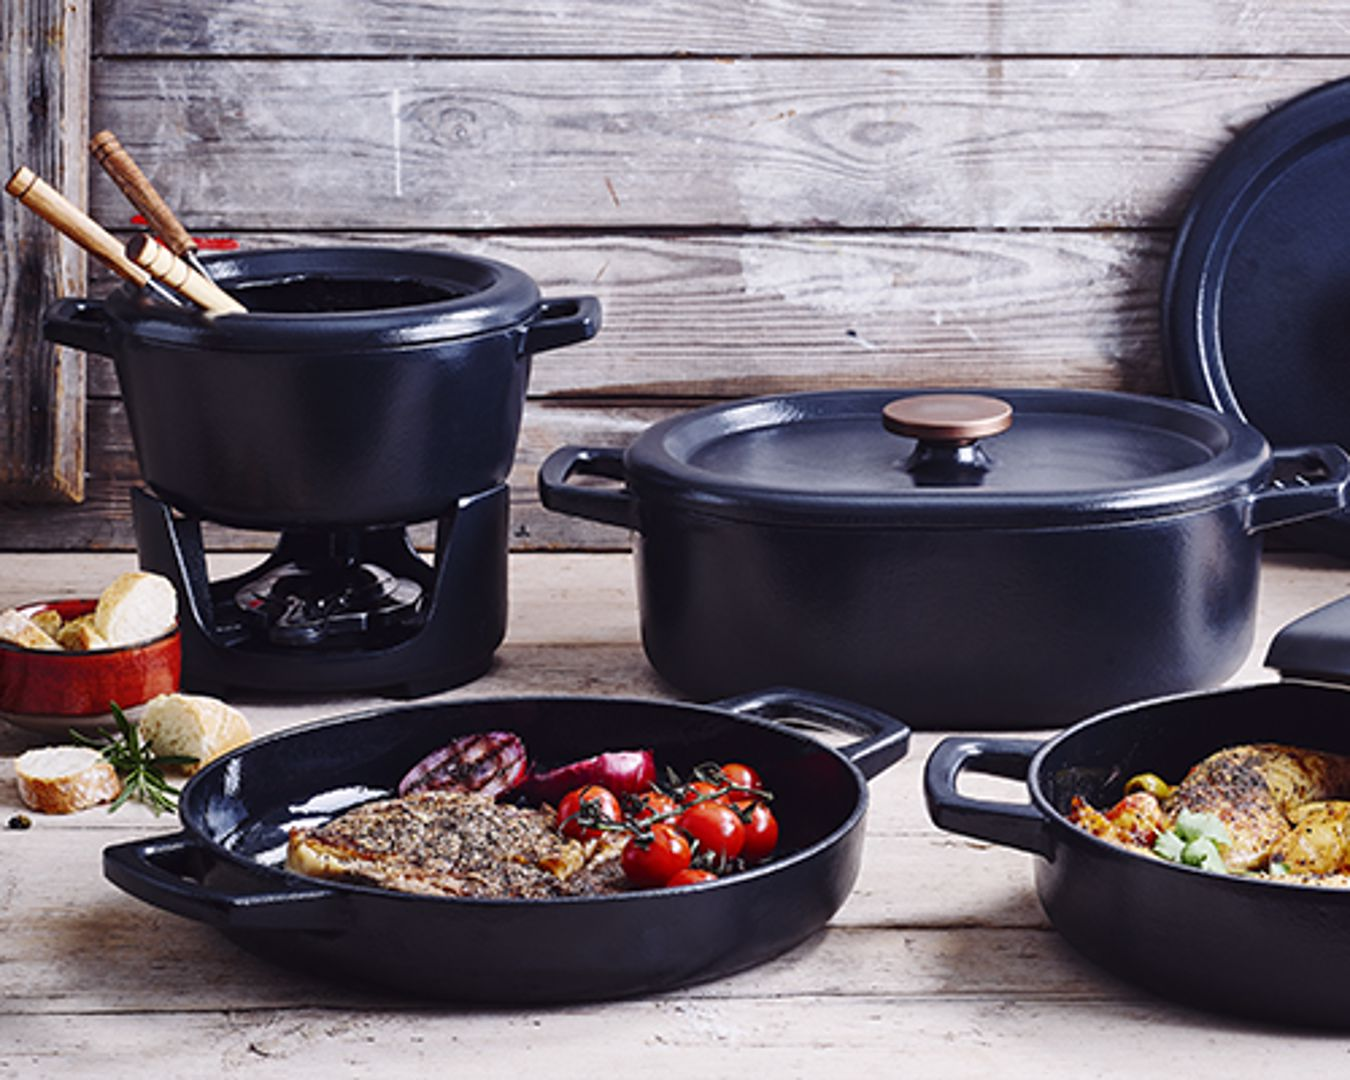 Discover Nori: our cast iron collection from generation to generation